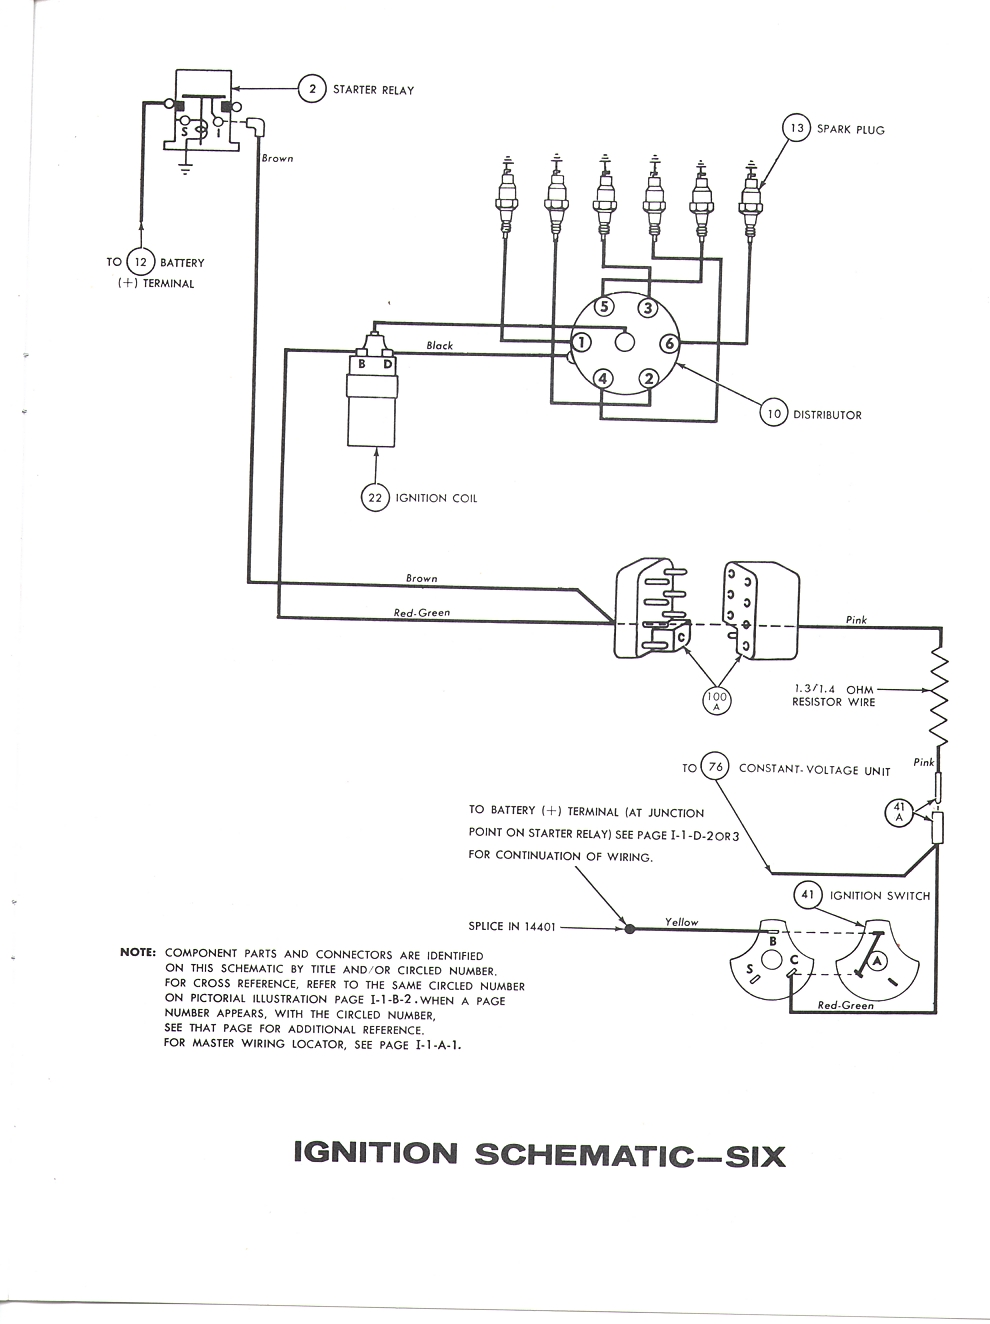 falcon diagrams rh wiring wizard com DC Wiring Diagram DSE 7310 Wiring Diagram 1980 Chrysler Cordoba